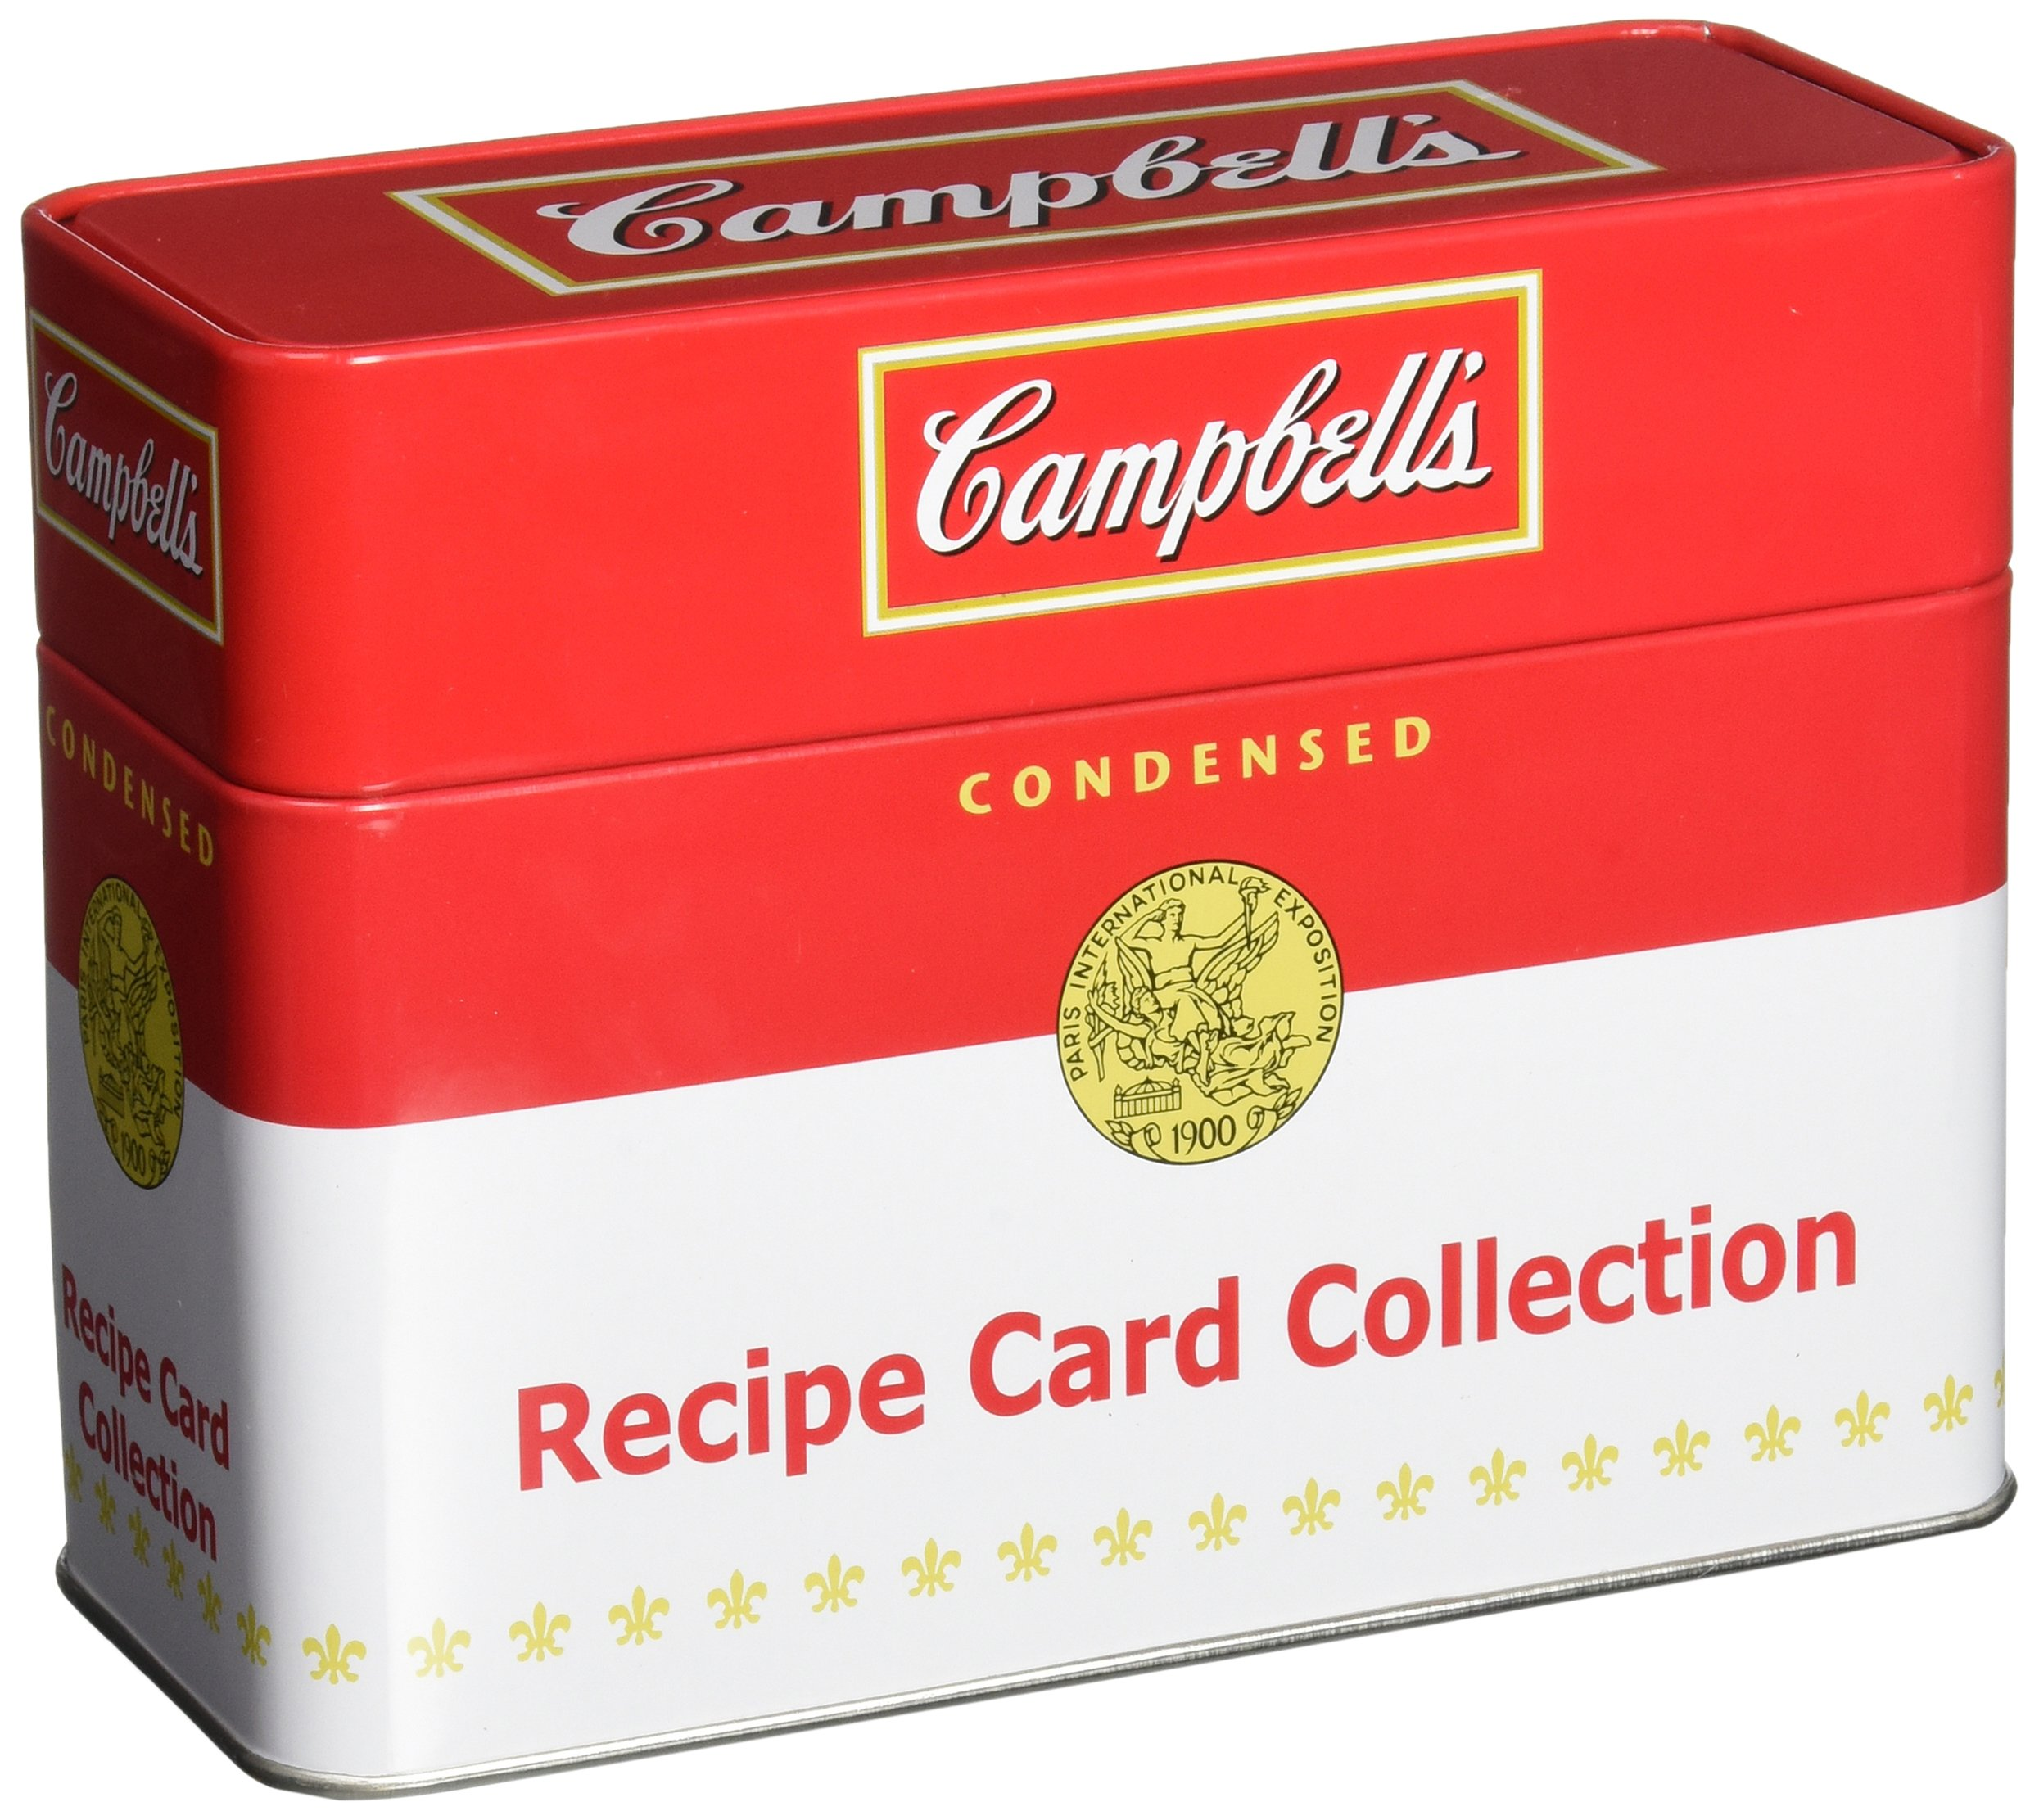 Collectible Campbells Tin with Recipe Card Collection pdf